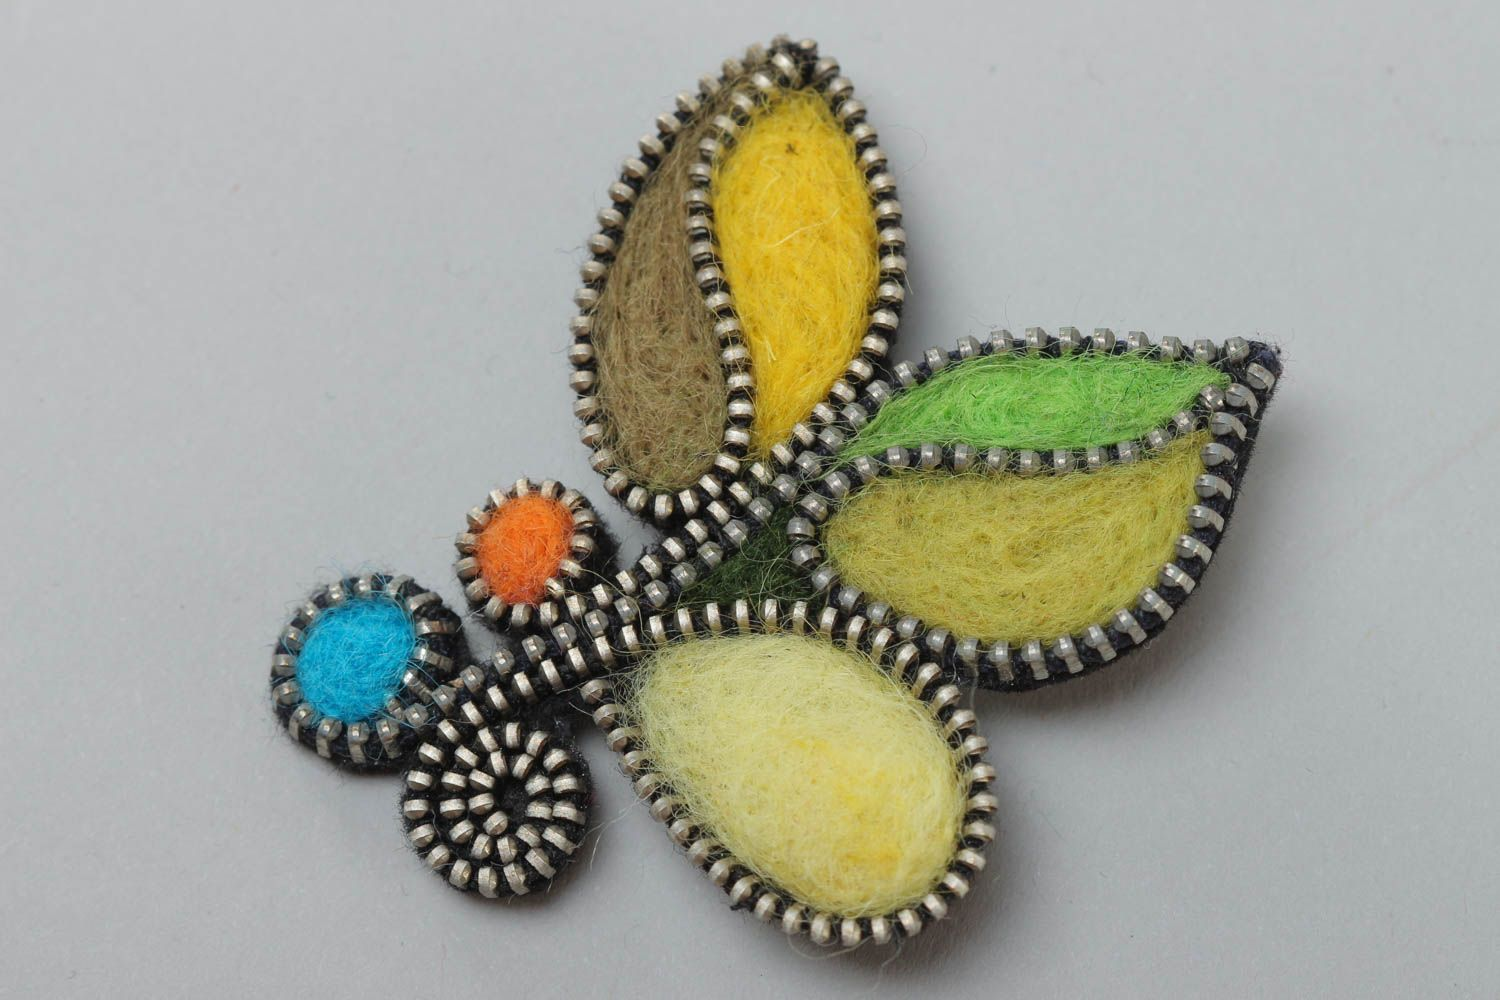 Handmade designer felting wool brooch decorated with zipper multi-colored accessory photo 2